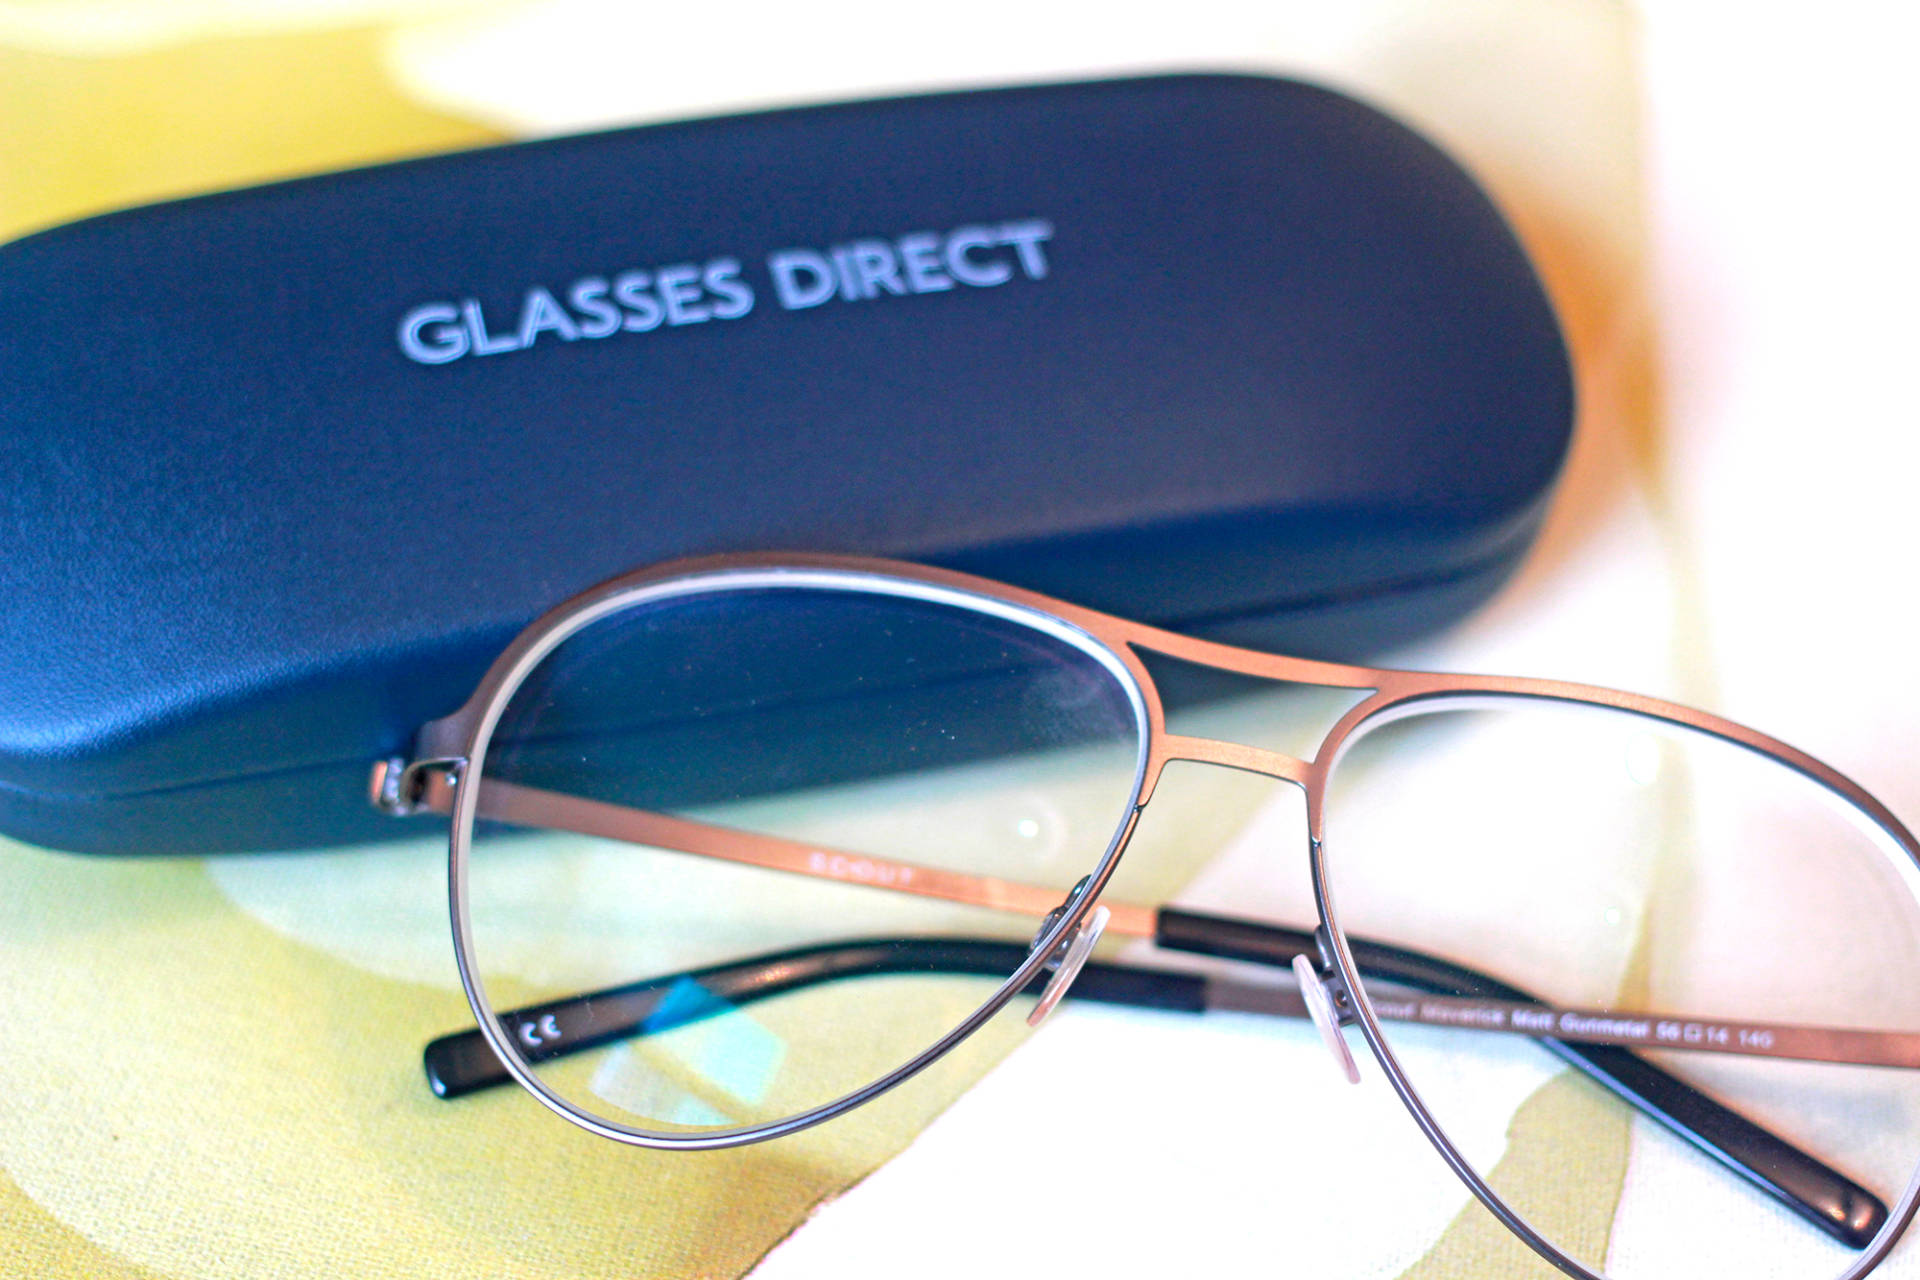 Glasses Direct Product